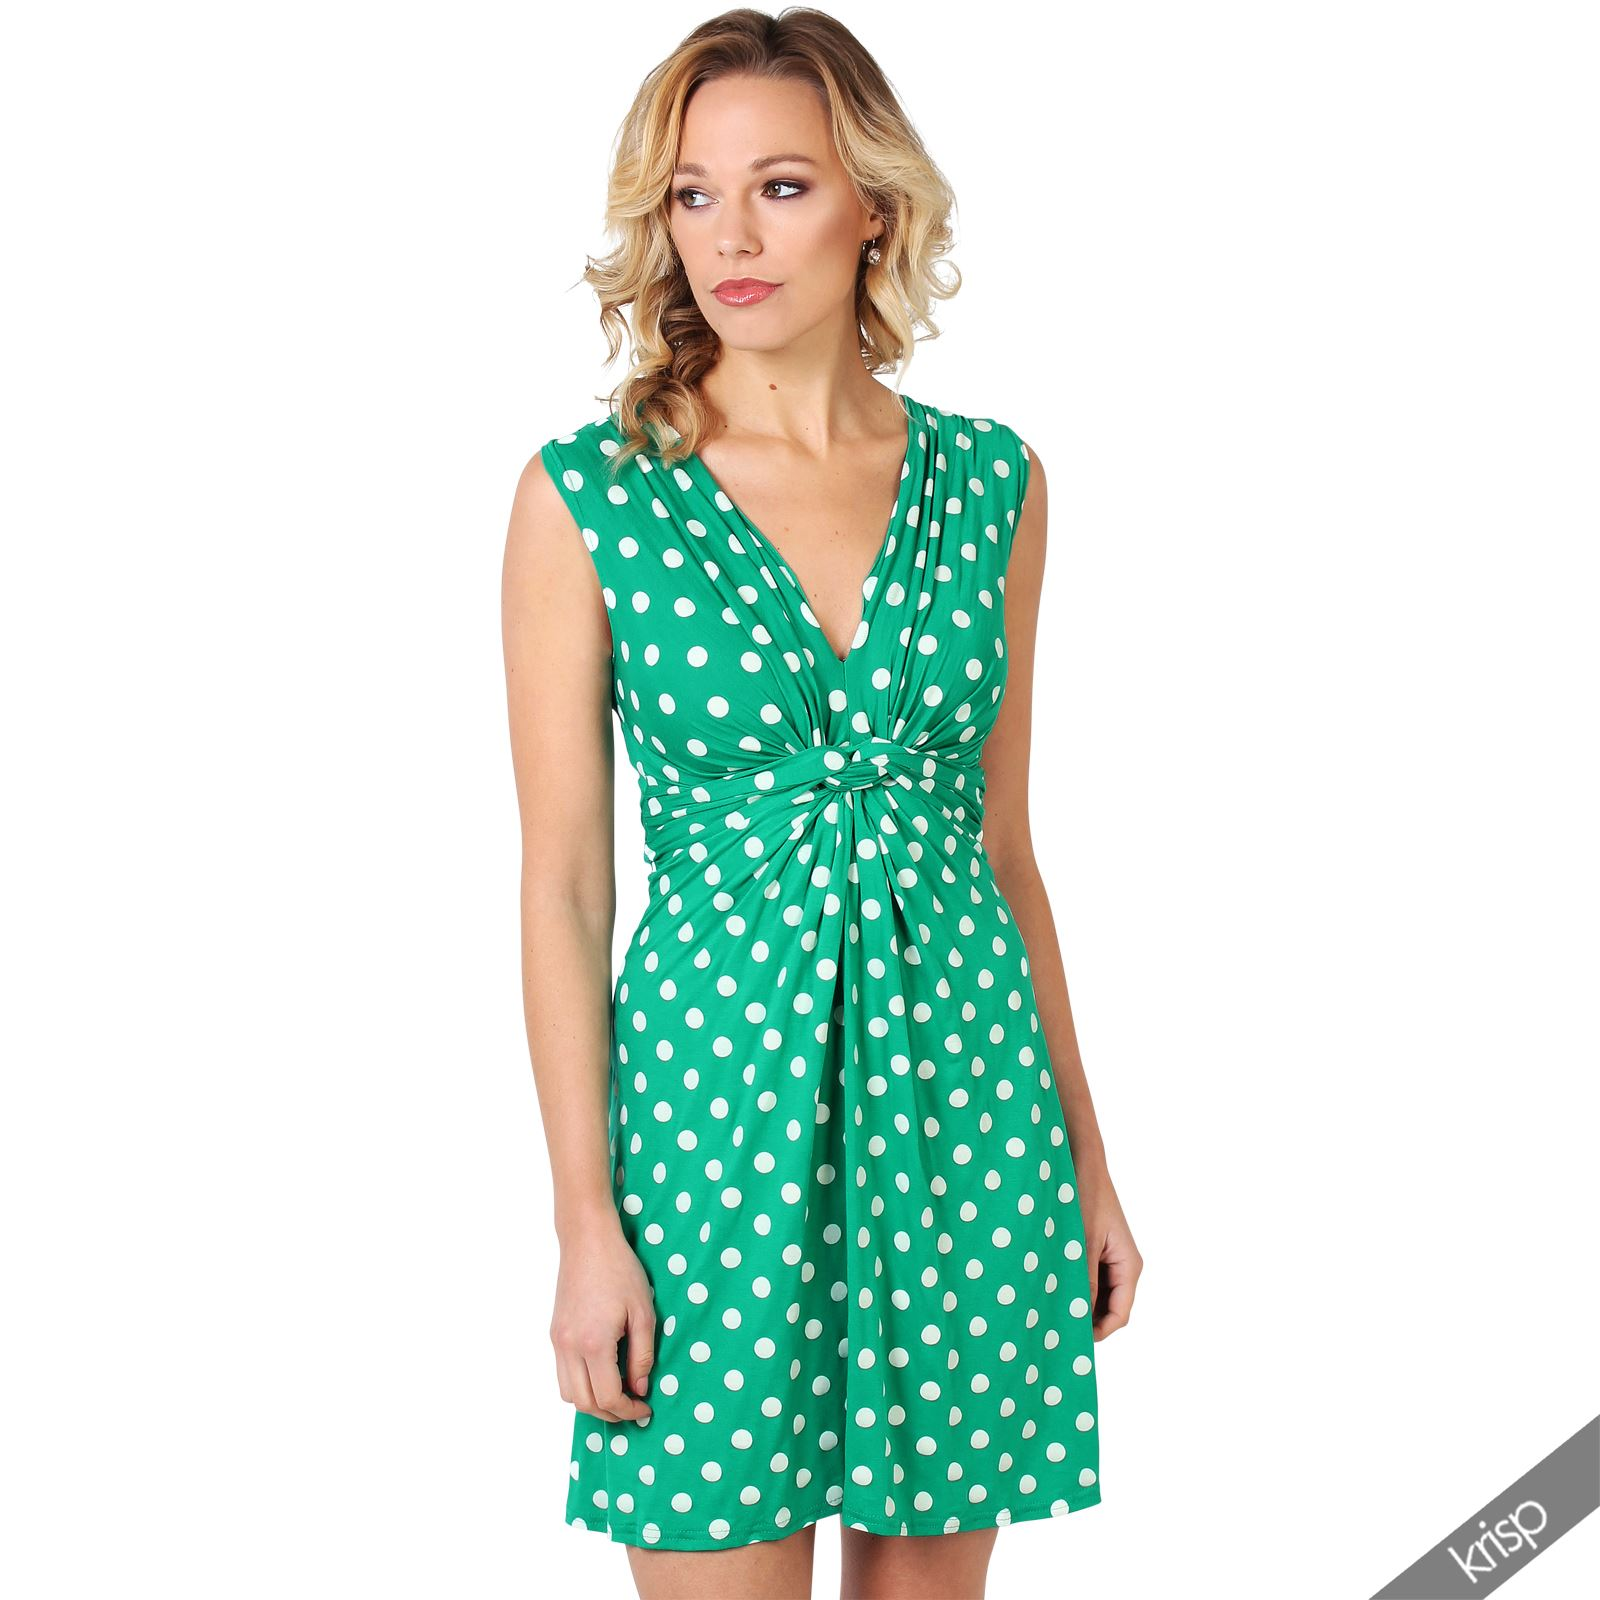 Womens-Polka-Dot-Retro-Dress-Pleated-Skirt-Wrap-Mini-V-Neck-Top-Swing-Party thumbnail 16